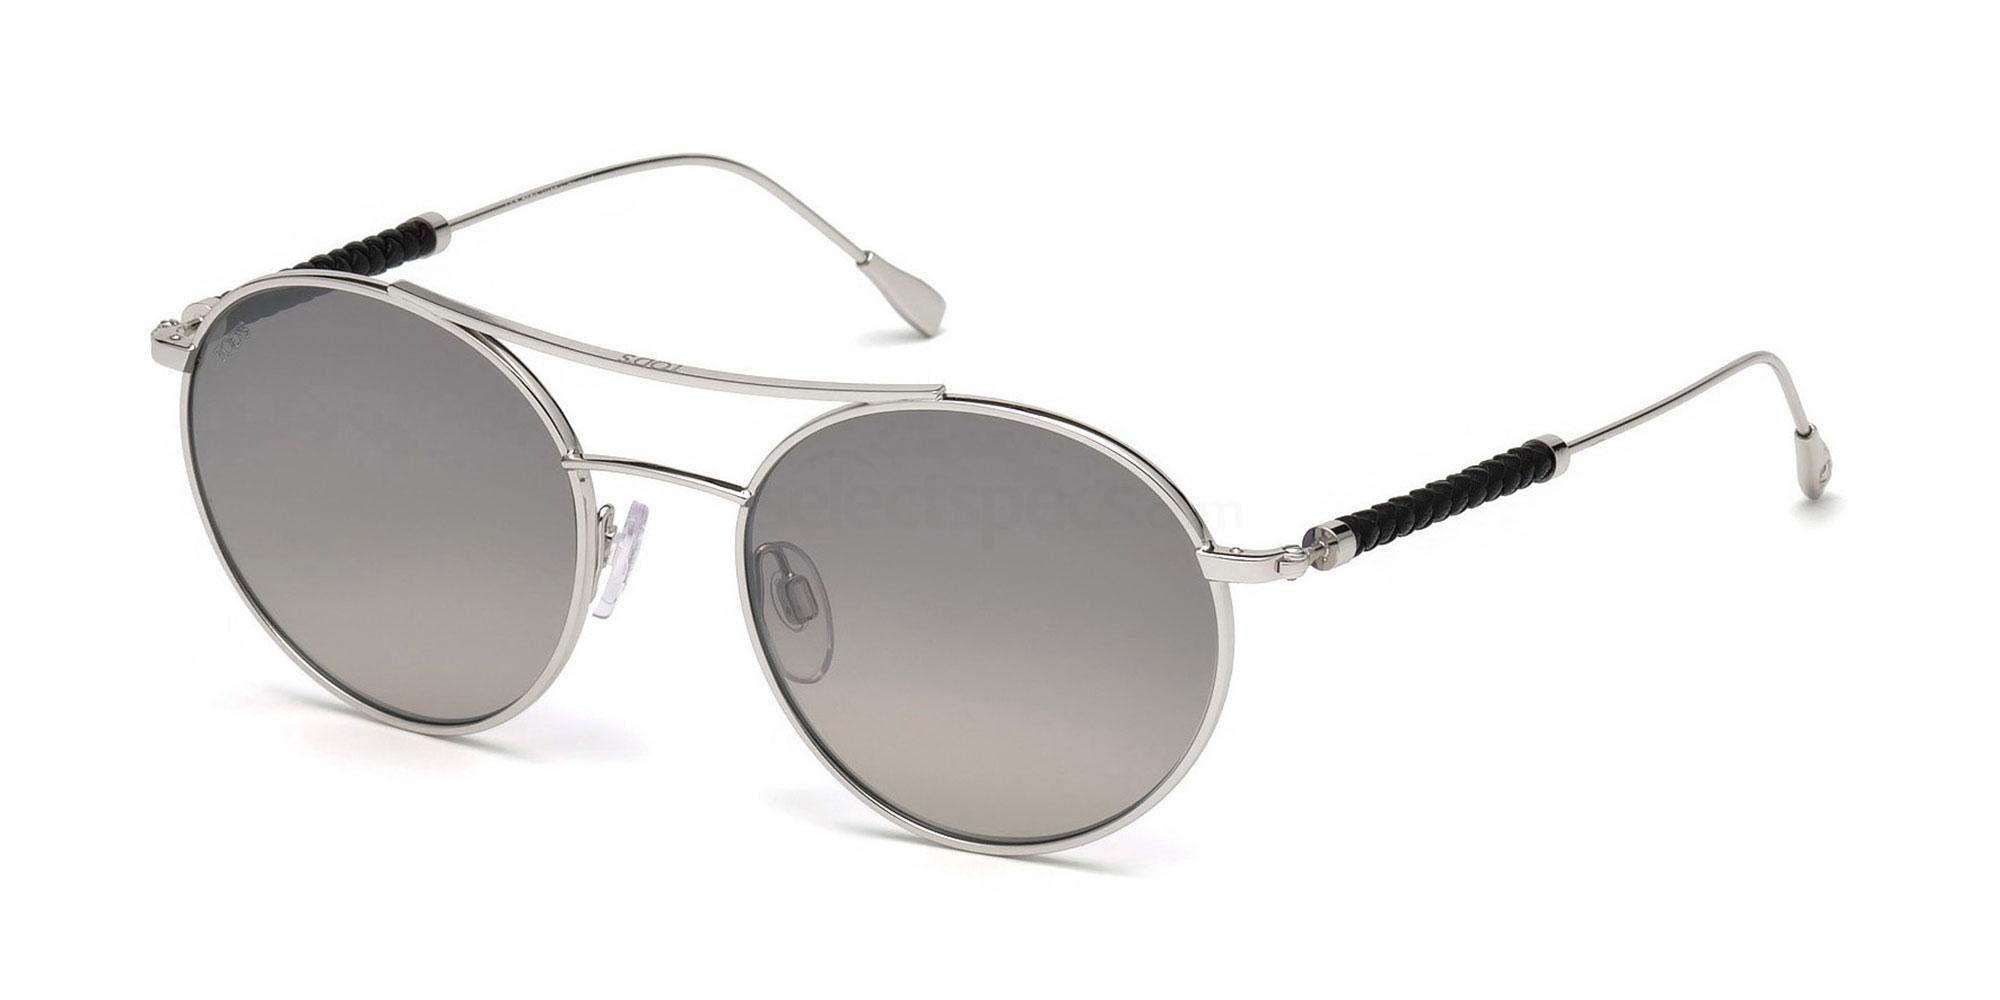 18C TO0228 Sunglasses, TODS